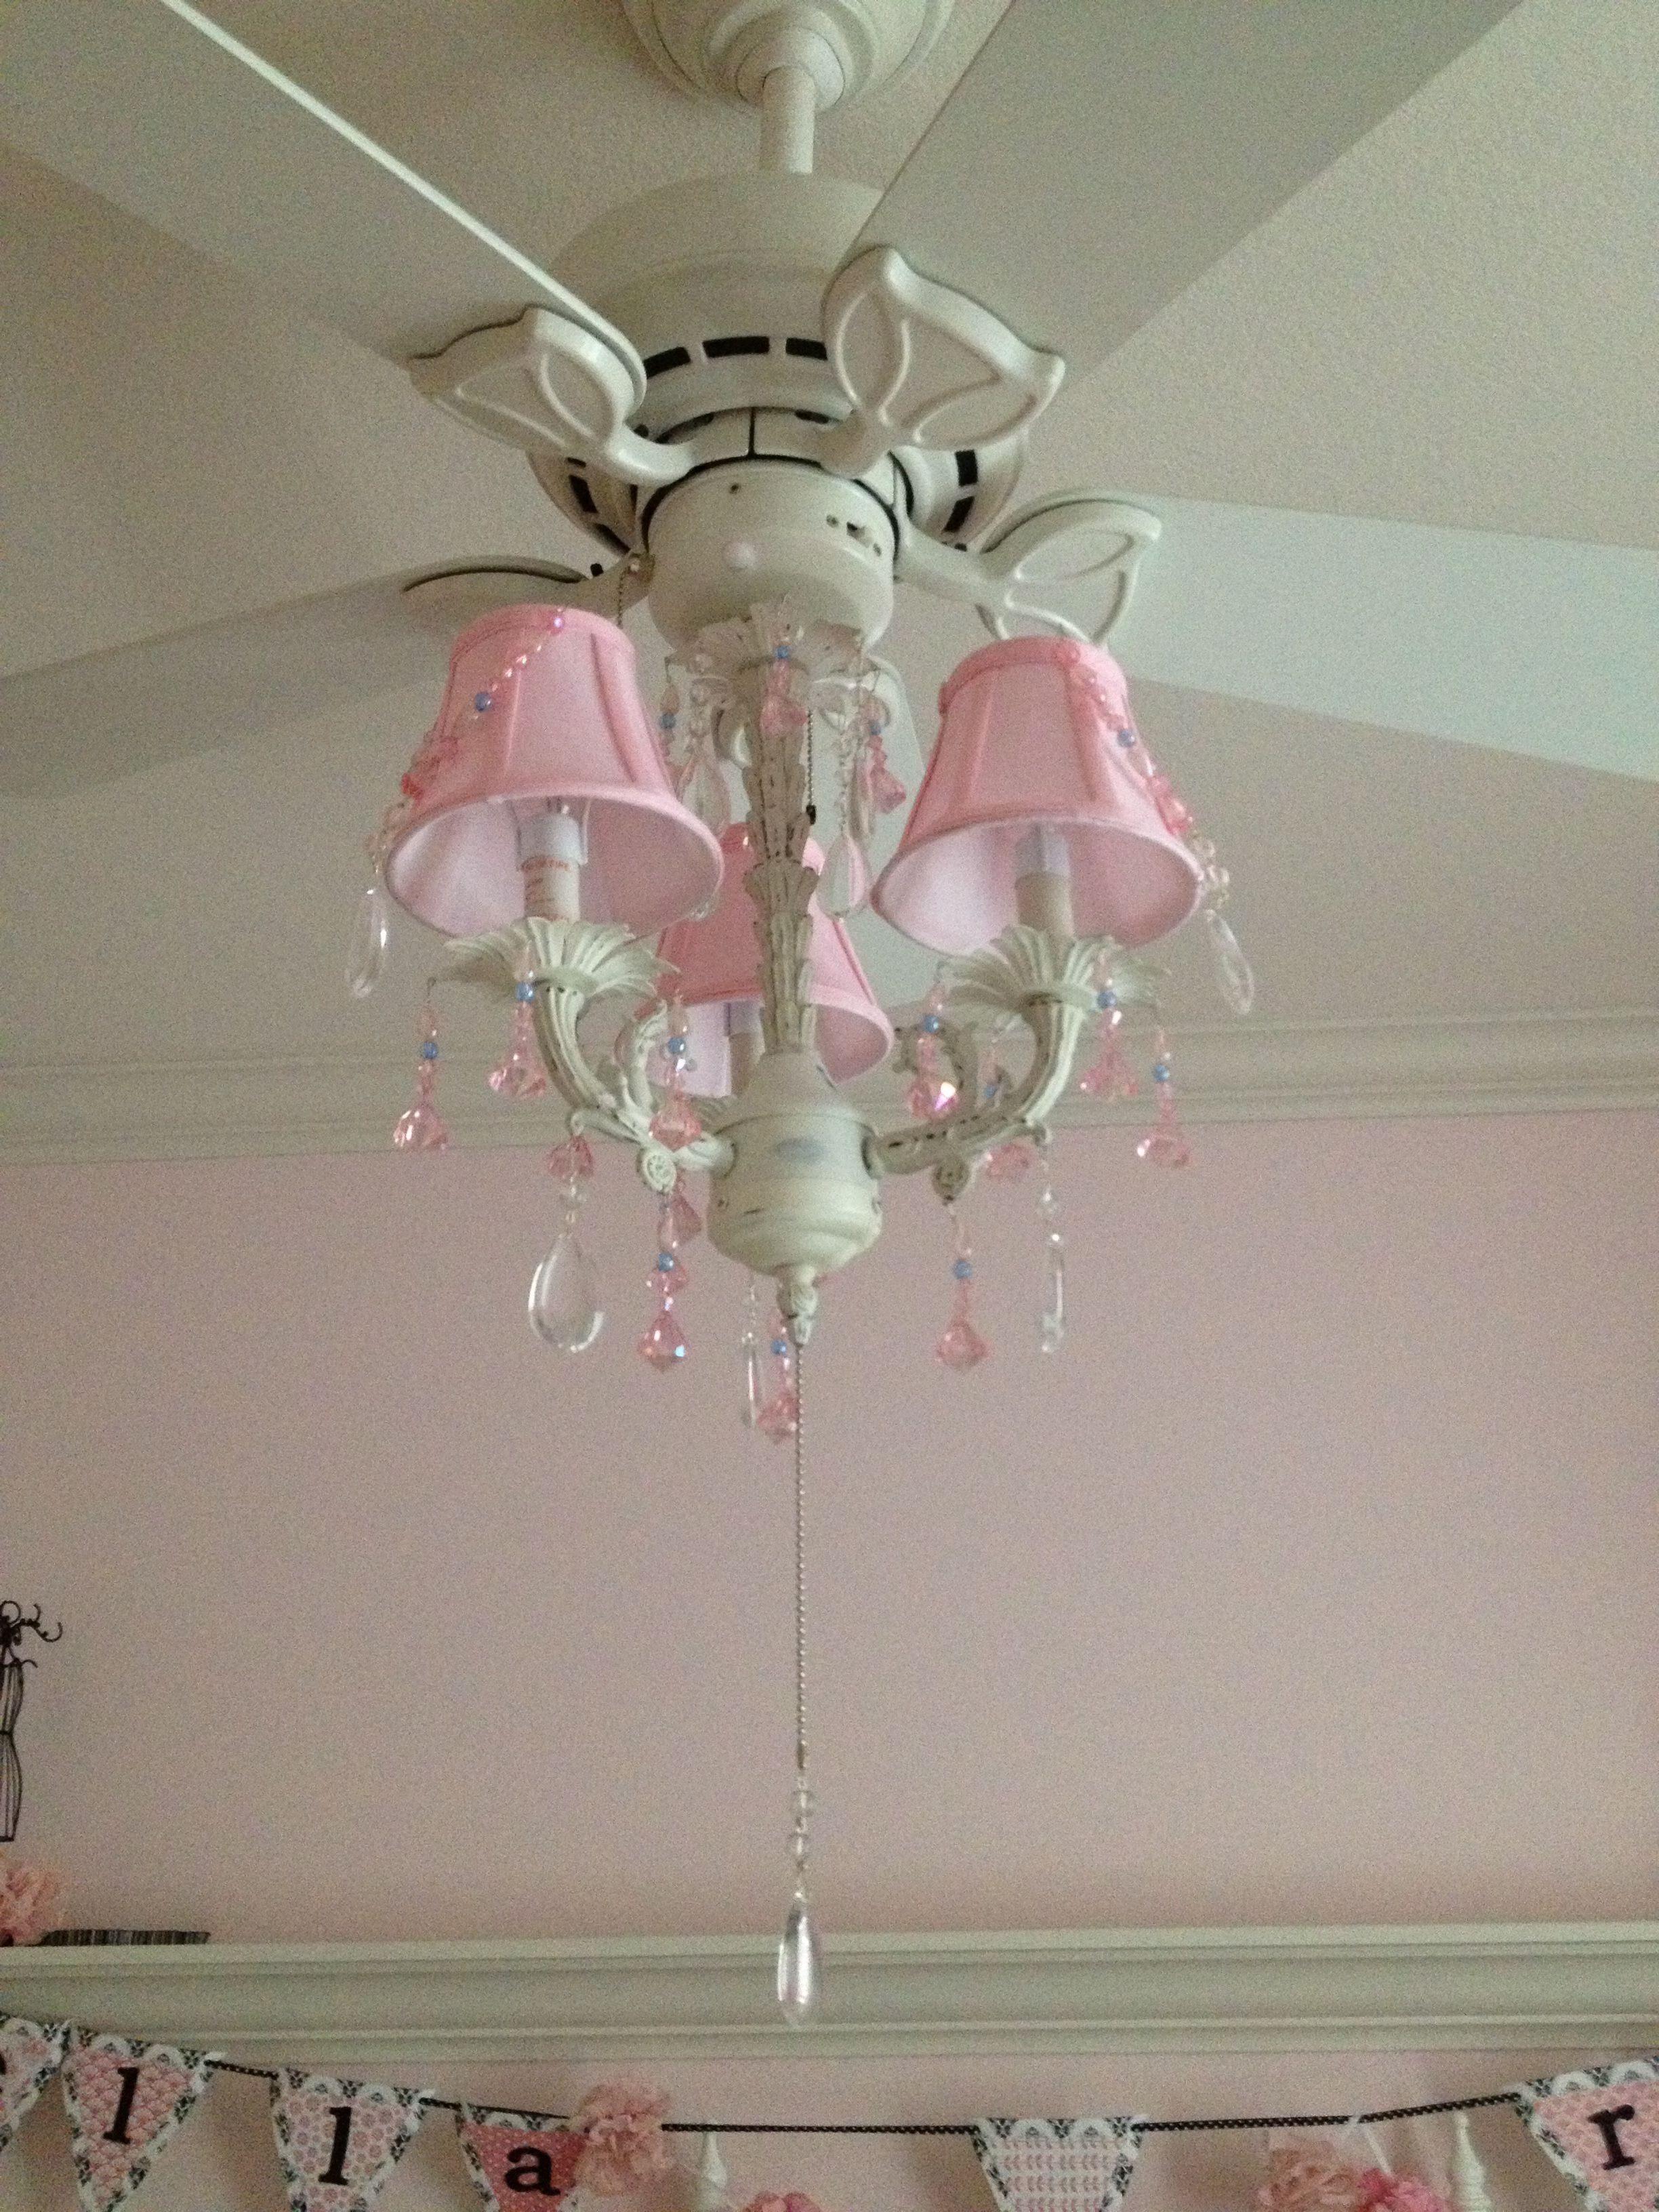 Ceiling Fans for Girl Bedroom Inspirational Pink Chandelier On the Fan